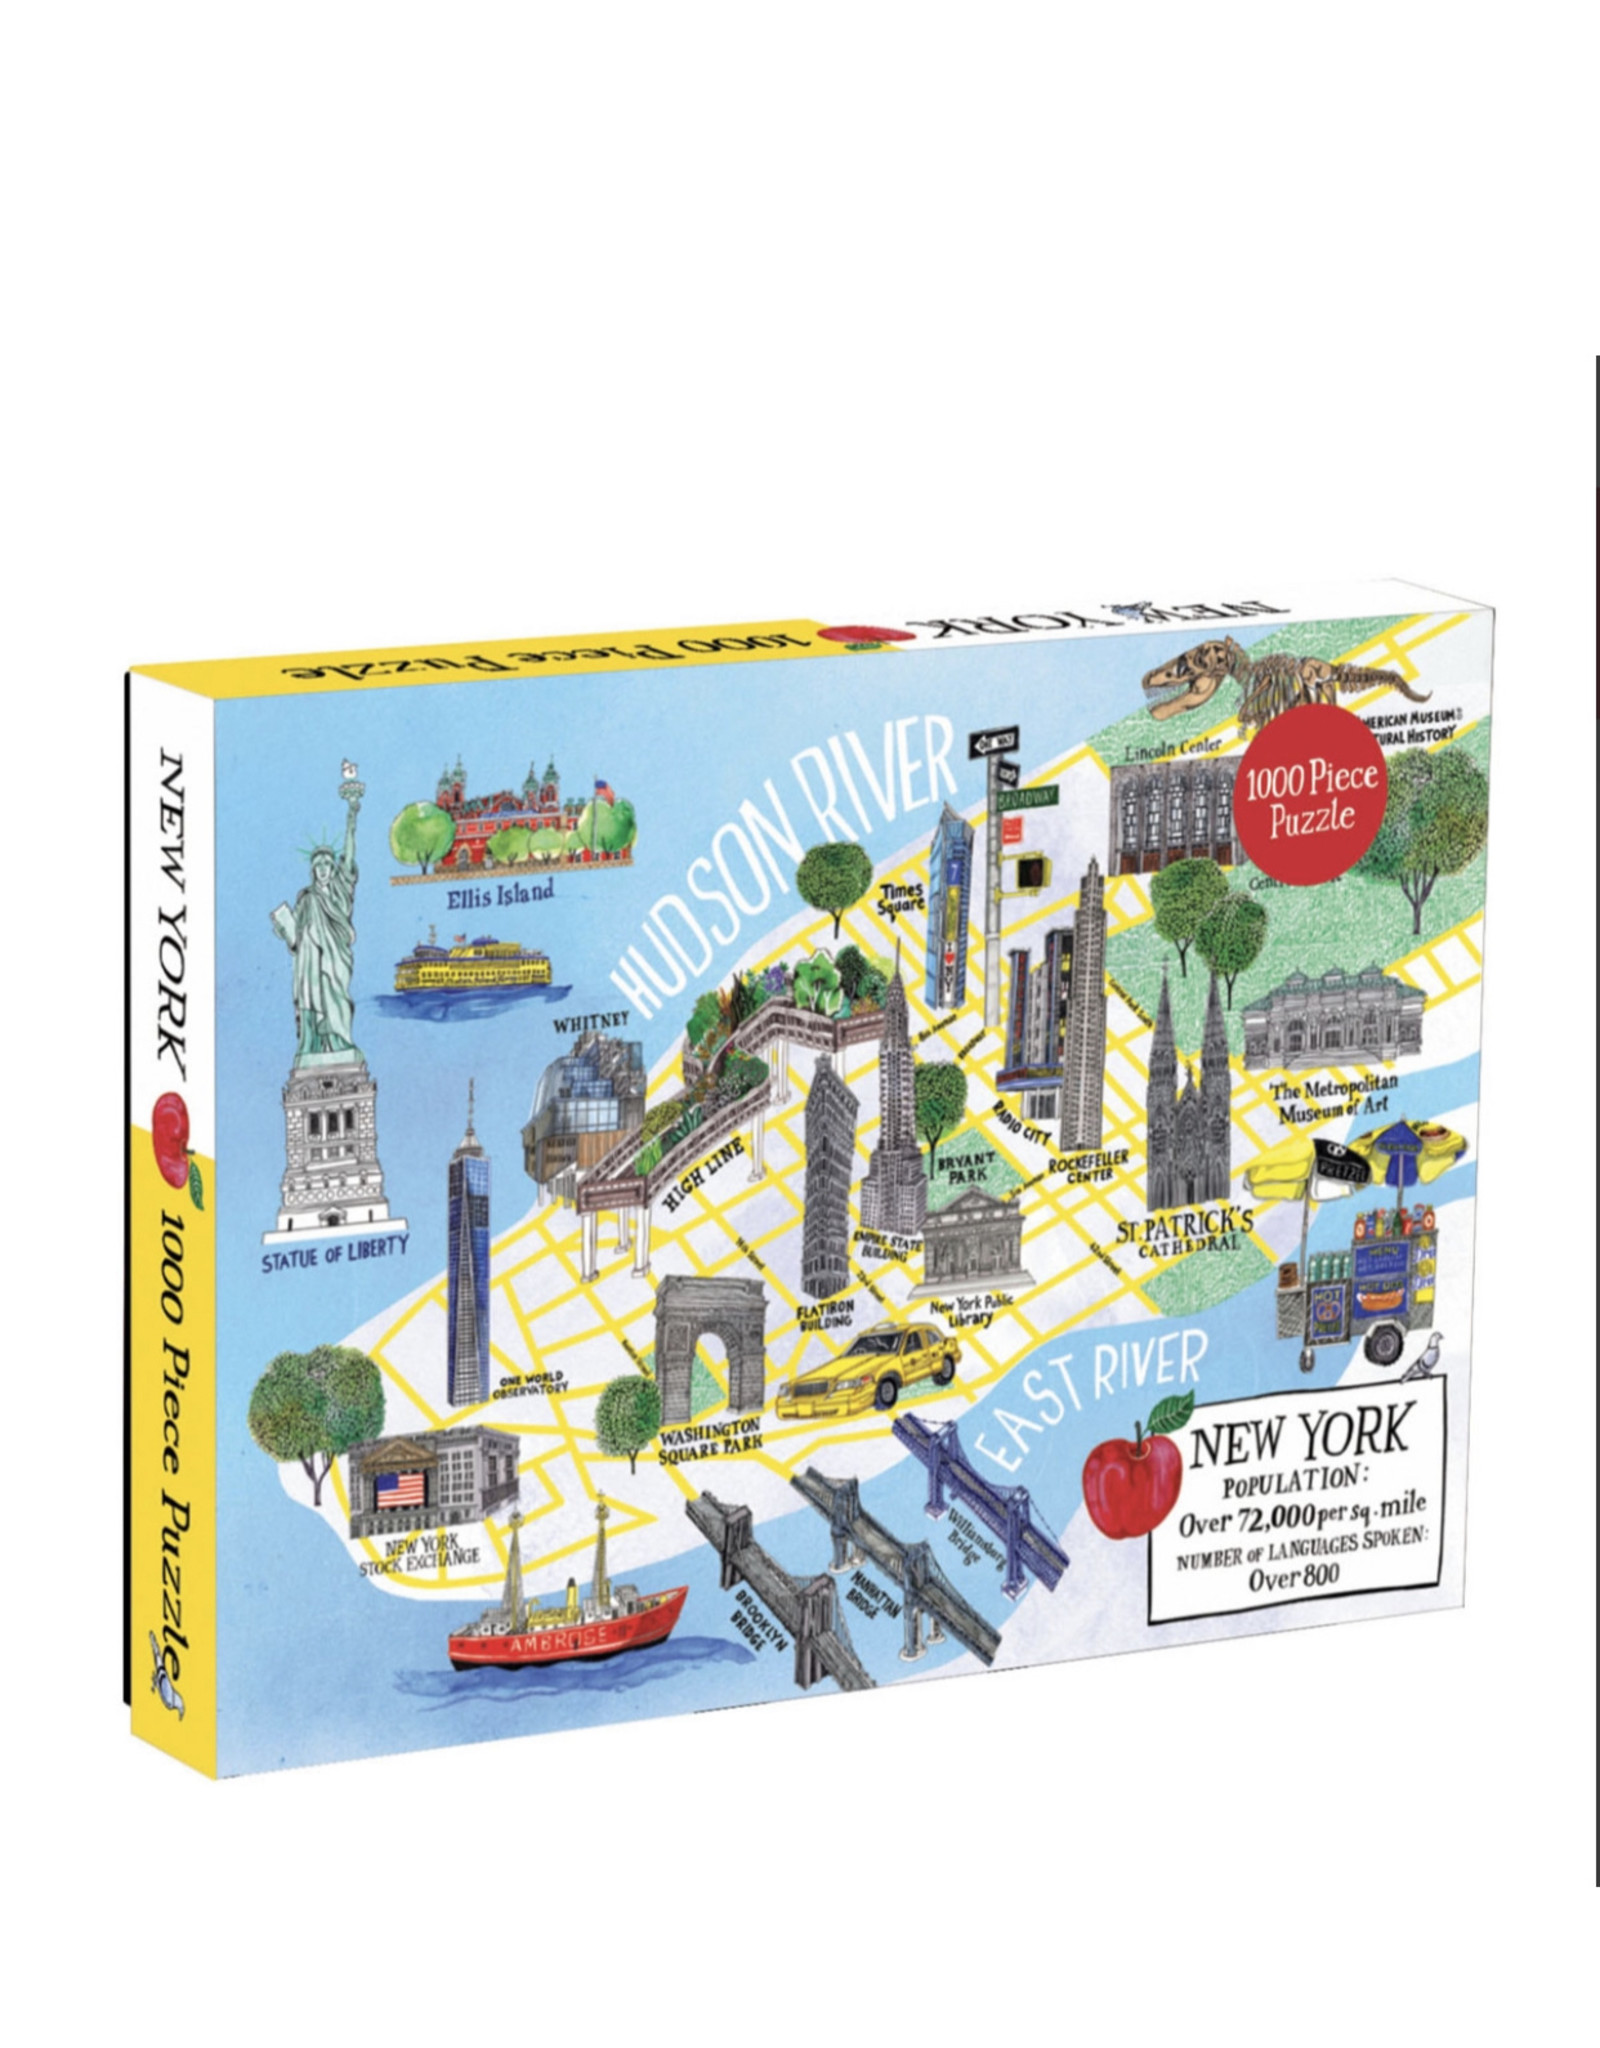 Chronicle Books New York City Map 1000 Piece Puzzle